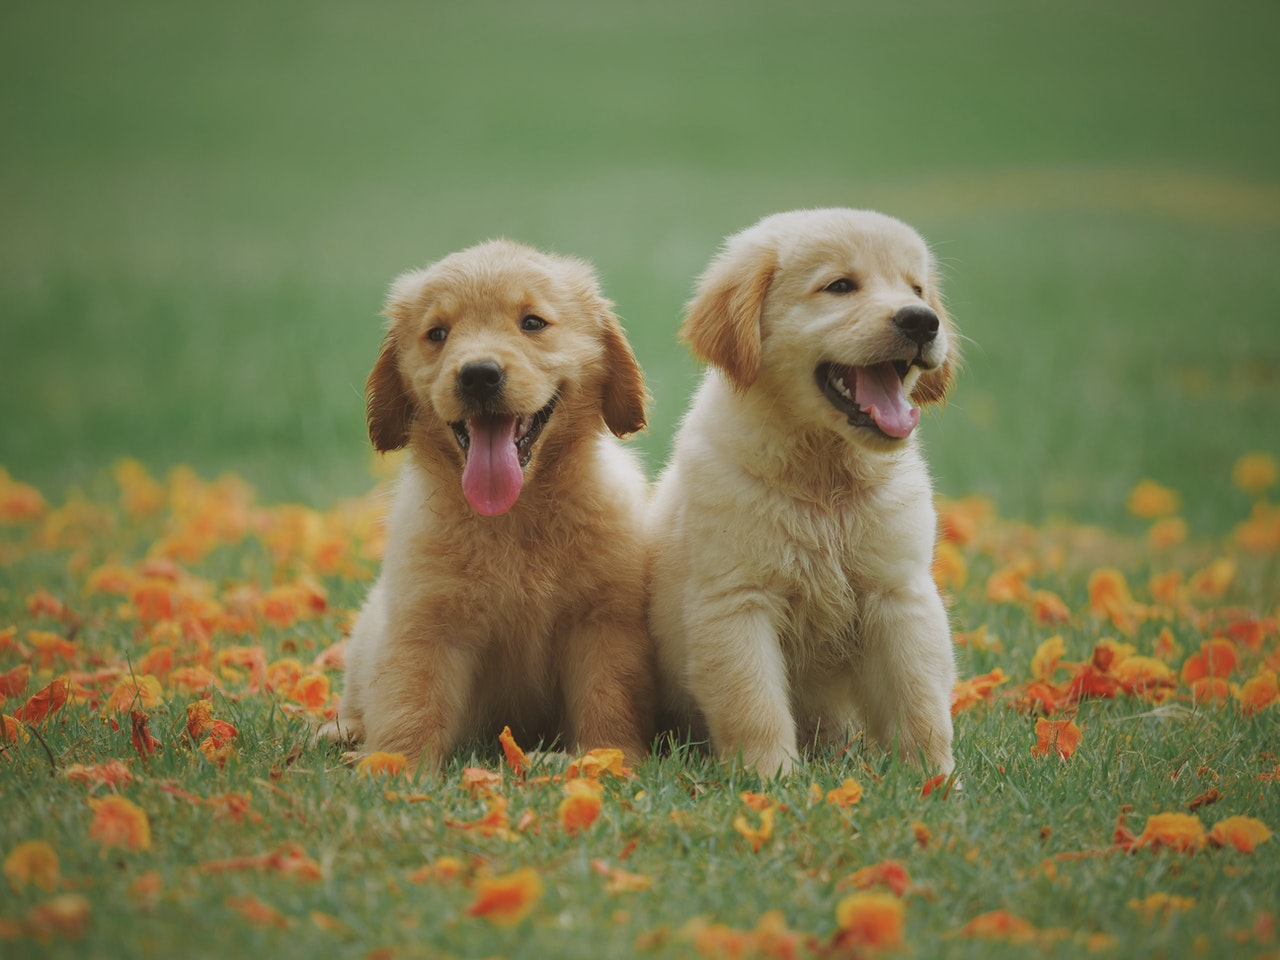 two puppies on the grass